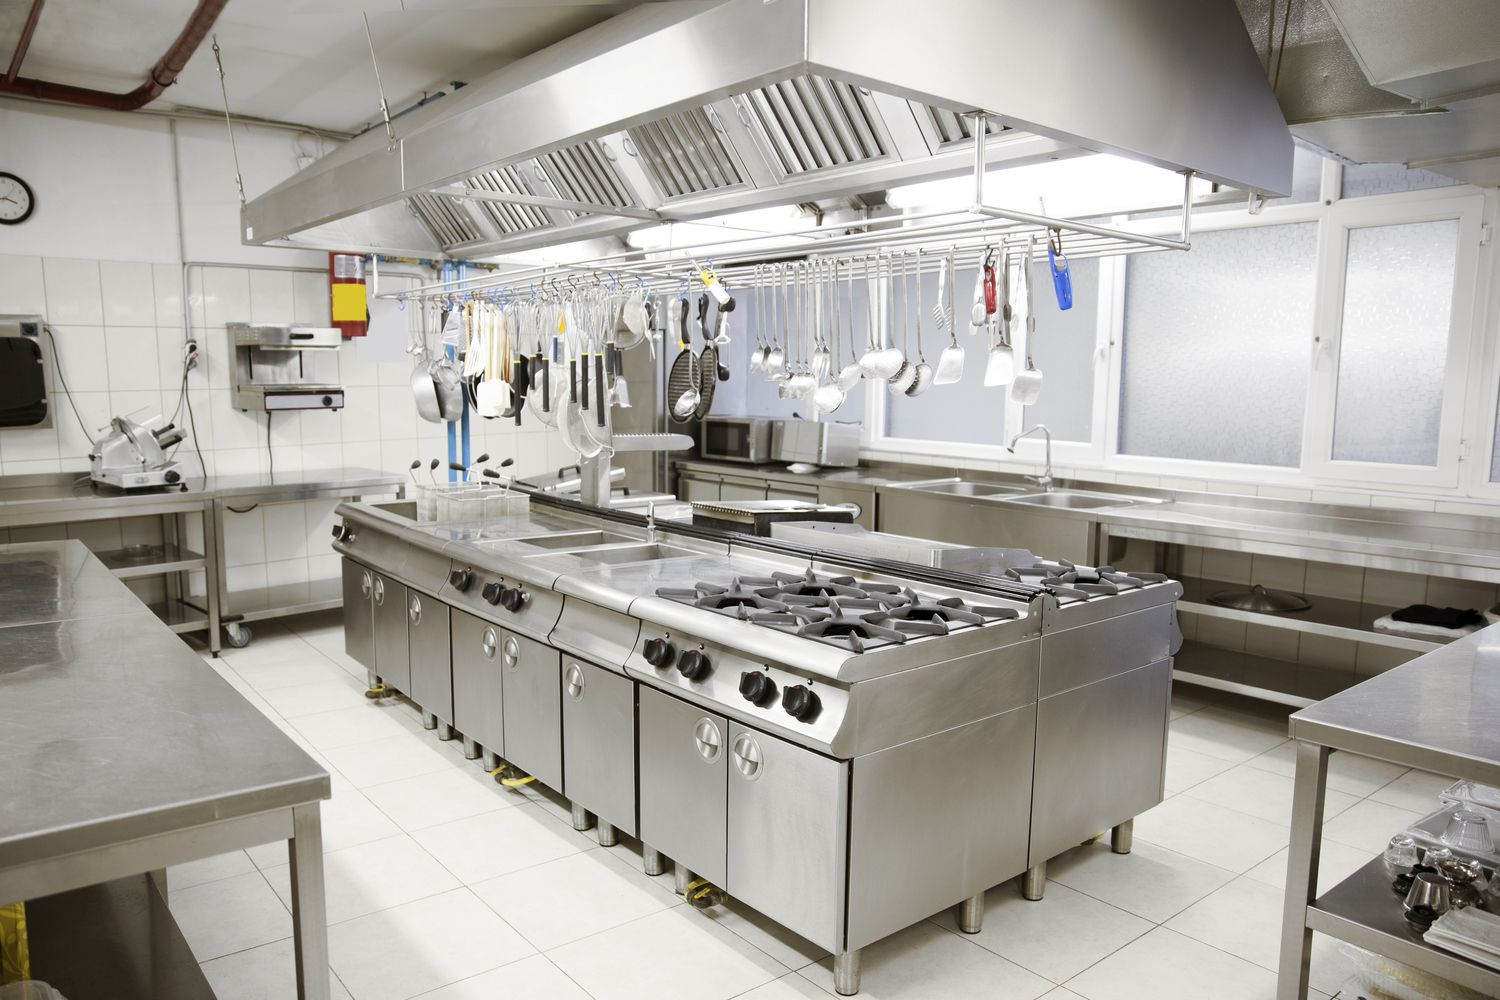 Commercial Kitchens Kitchen Cabinet Grades Equipment Manufacturers In Delhi India Industrial Equipments